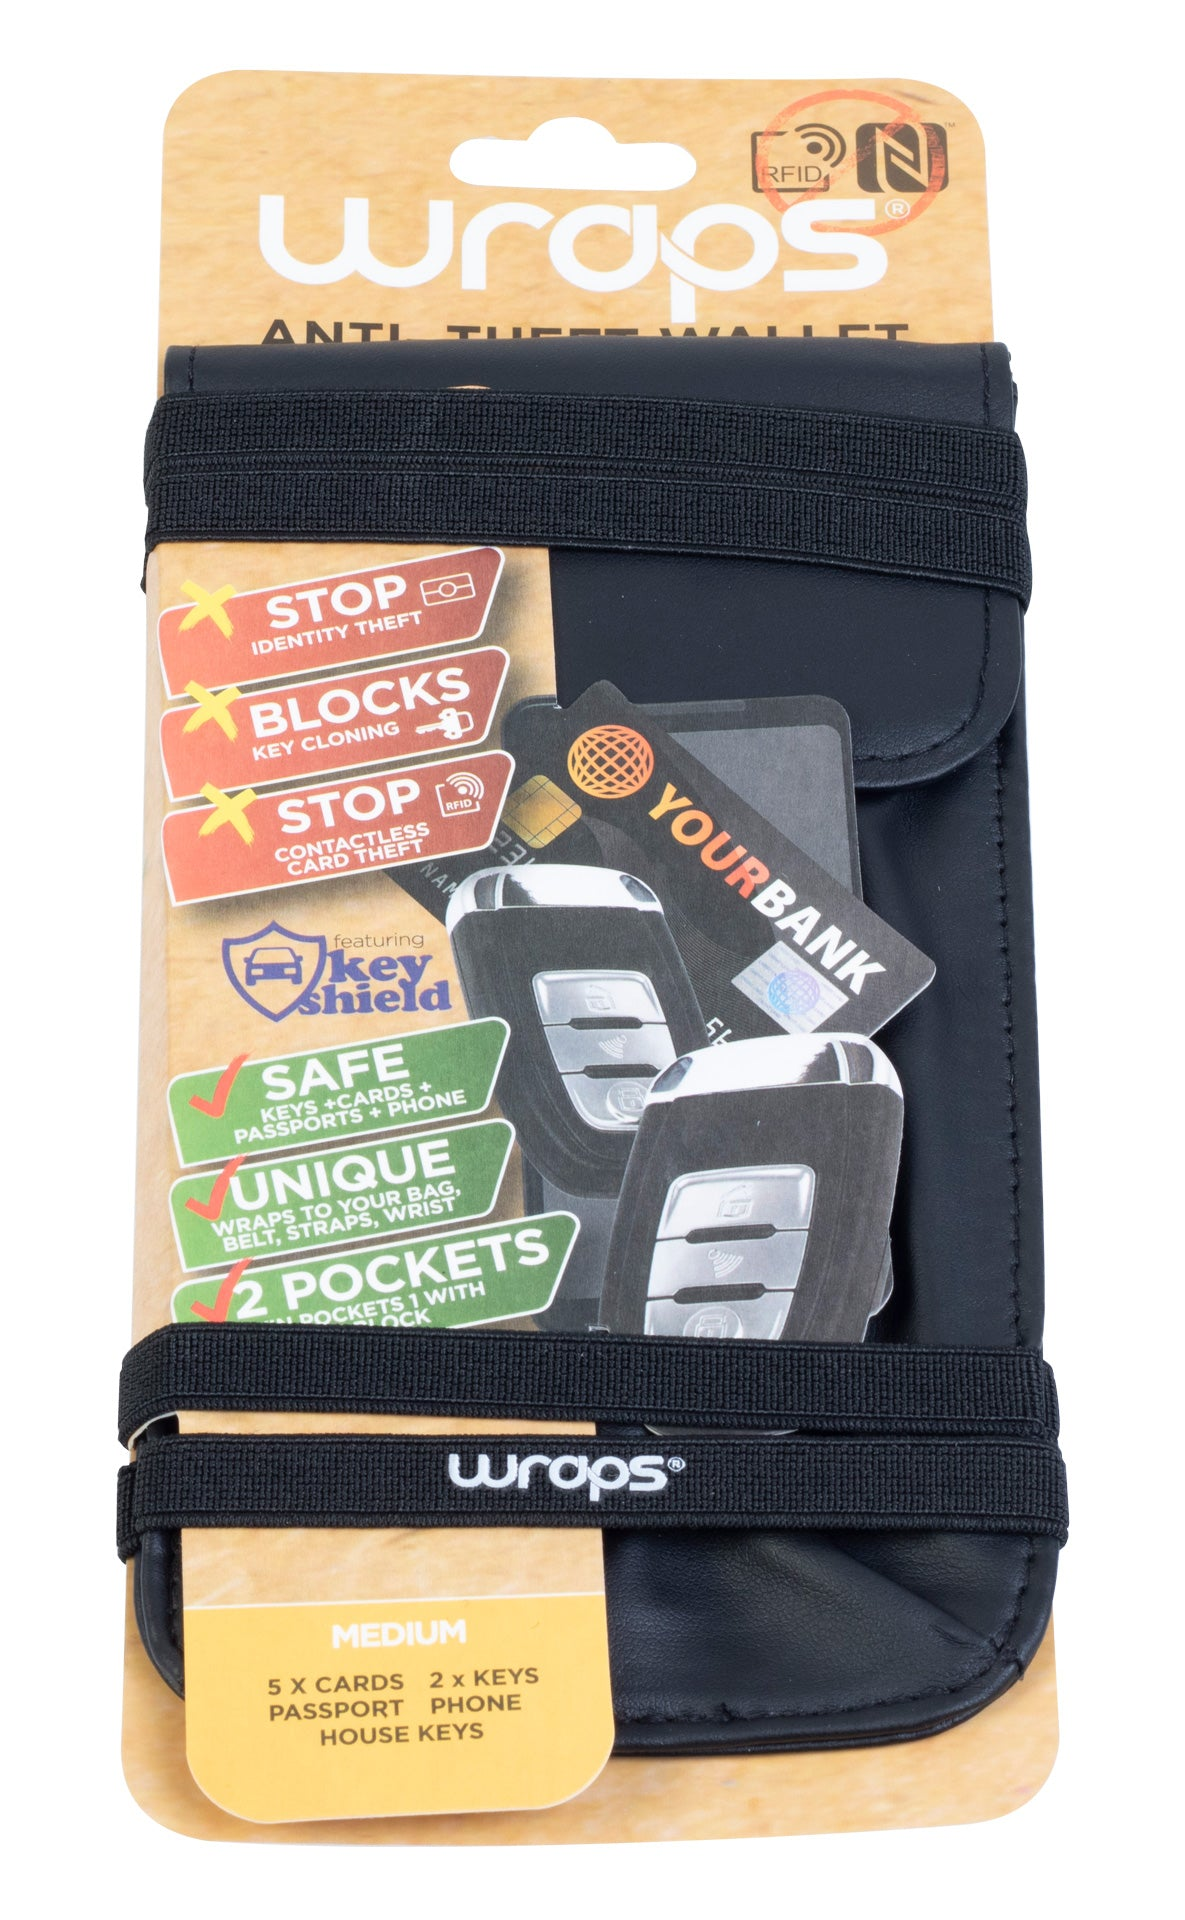 Wraps RFID Wallet Medium